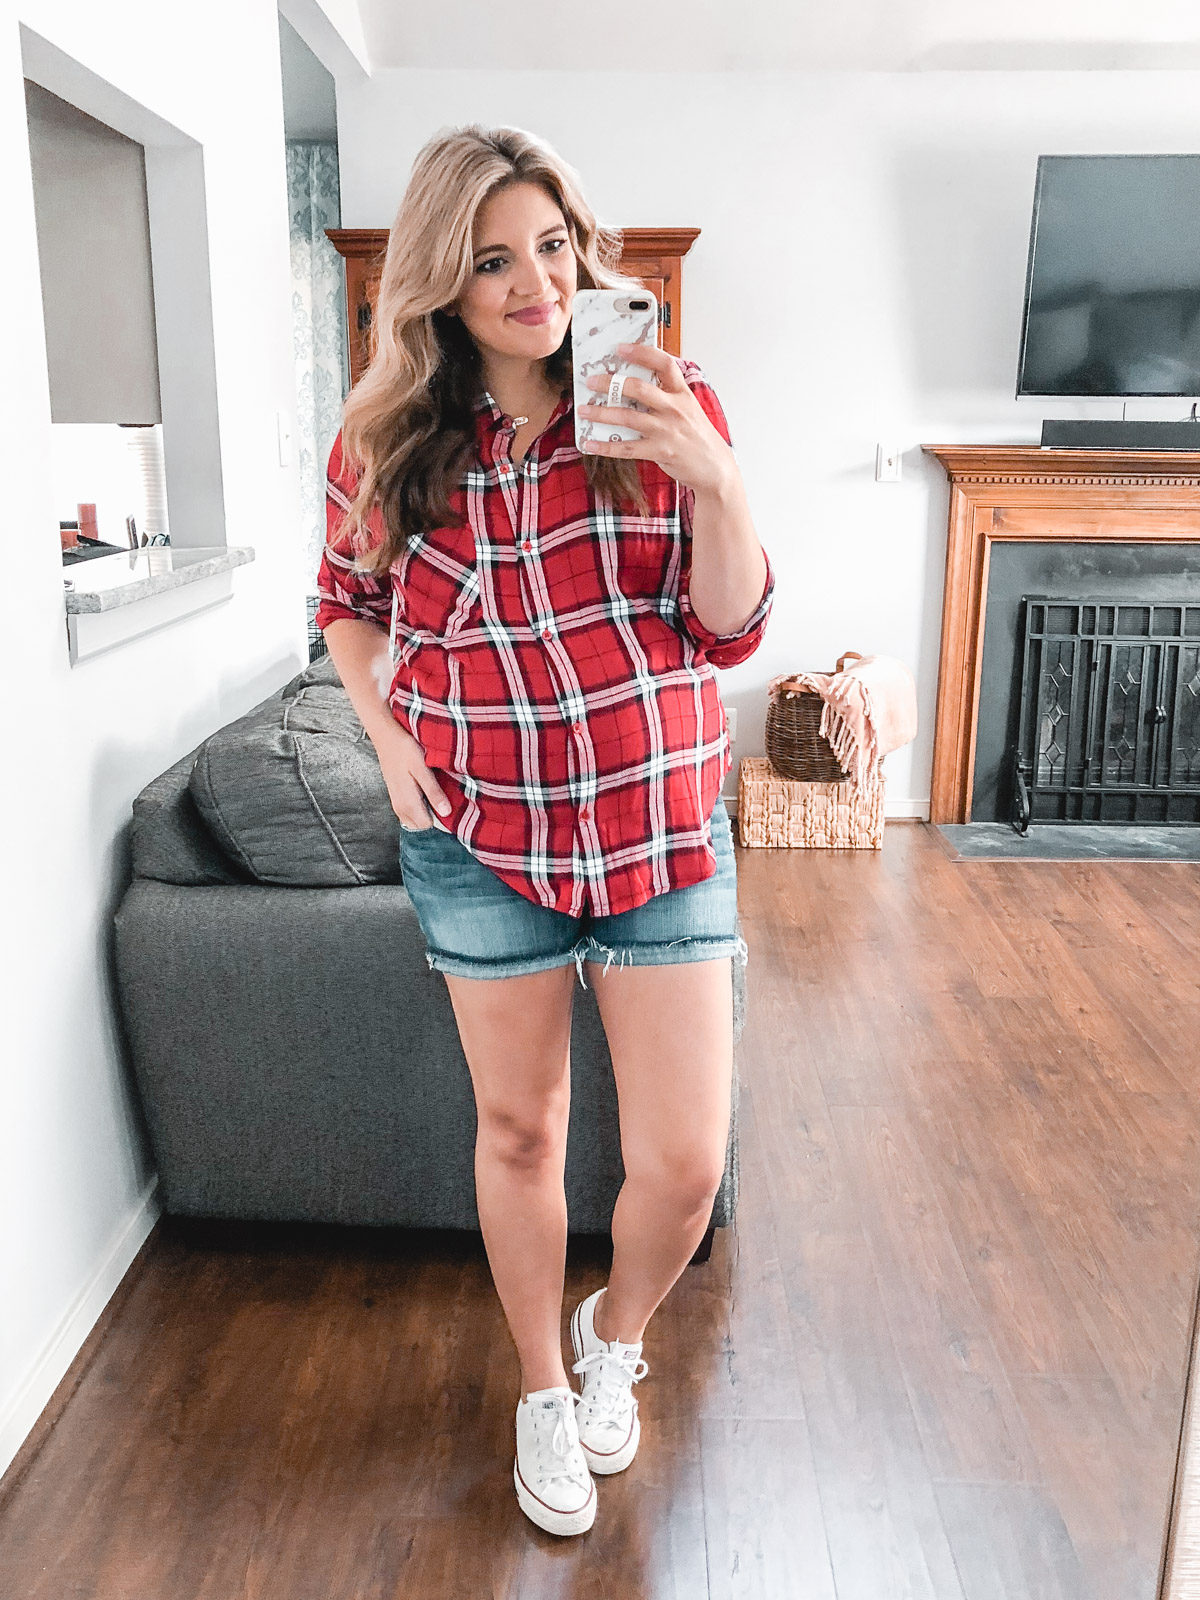 plaid top summer outfit: Need plaid top outfit ideas? I'm sharing one $31 plaid top styled 15 different ways on bylaurenm.com!